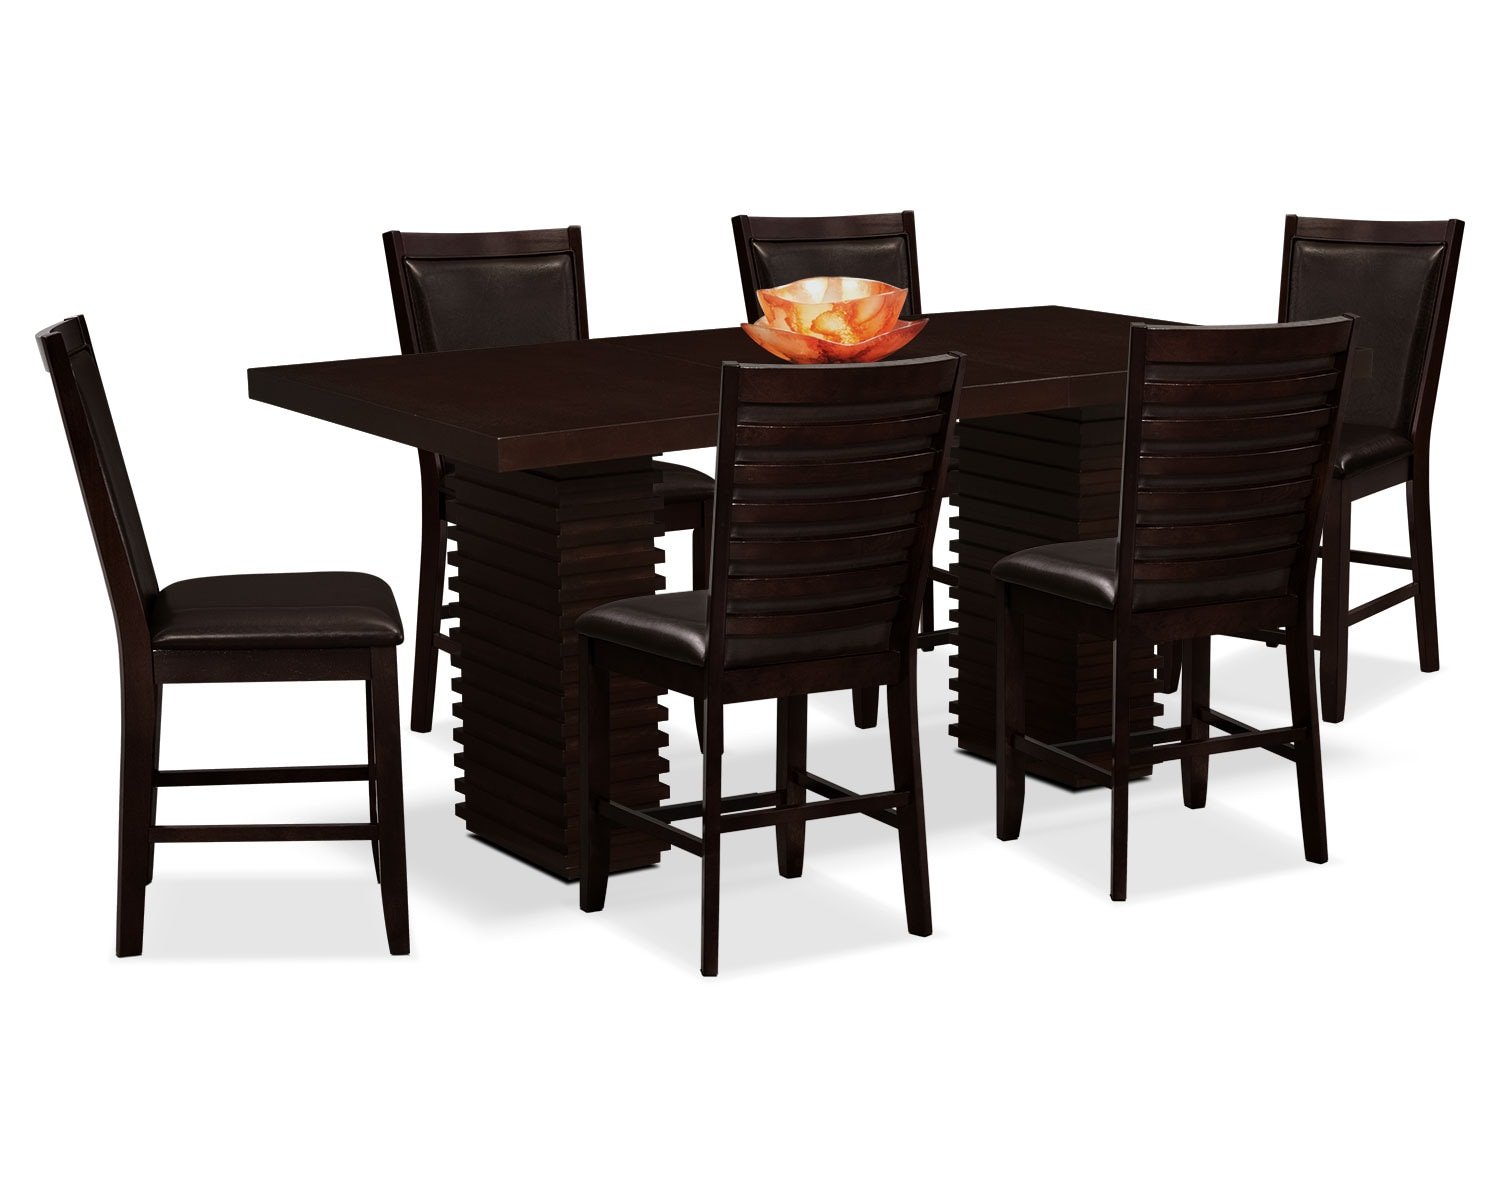 The Paragon Counter-Height Dining Collection